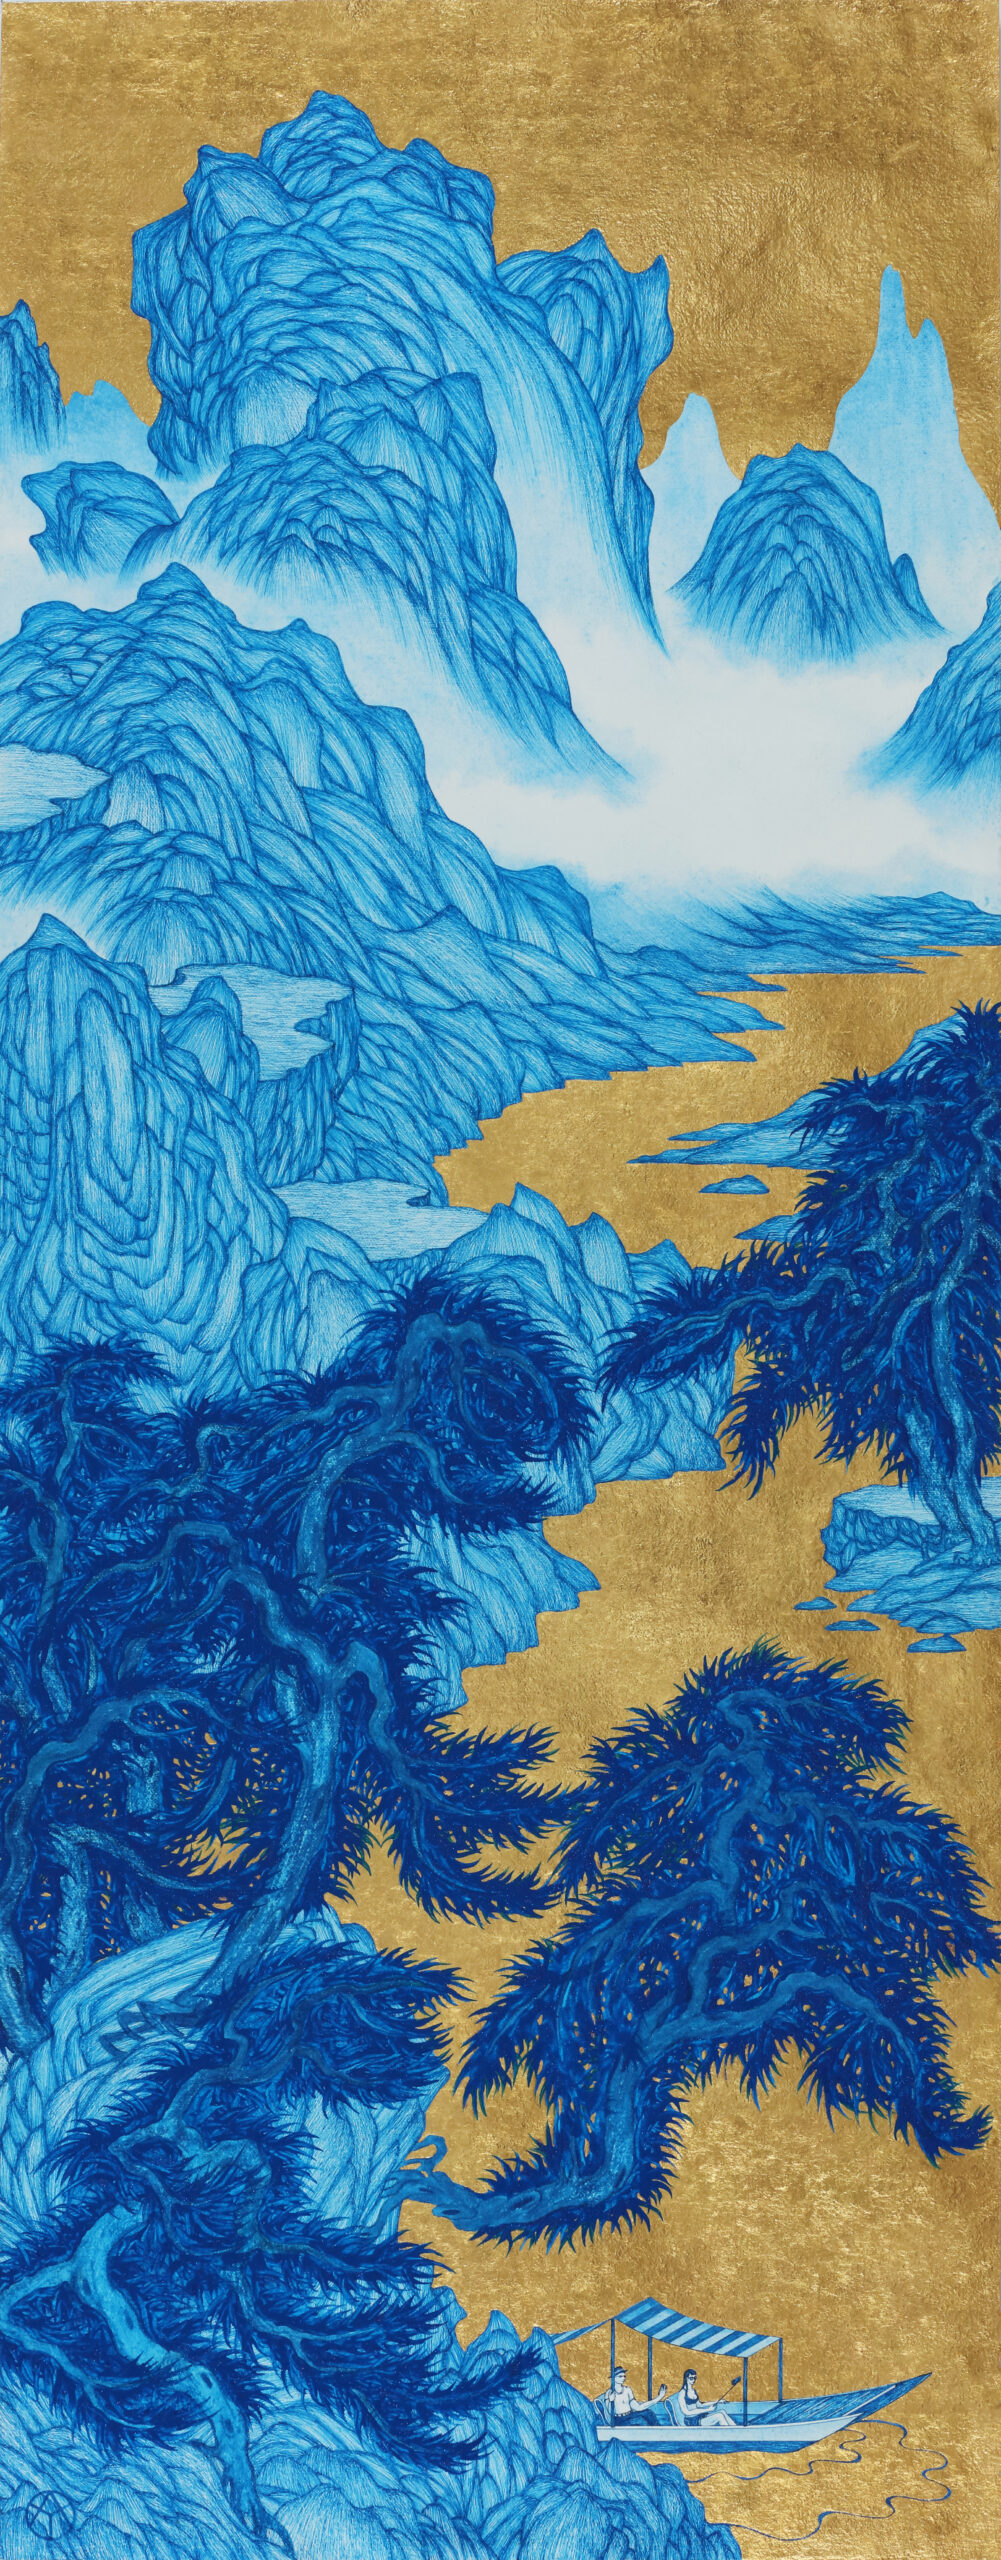 20.3332Yao Jui-chung Good Times: Boating Together, 2020 Handmade paper, gold leaf and ink 78 1/4 x 33 1/4 in (198.5 x 77 cm)